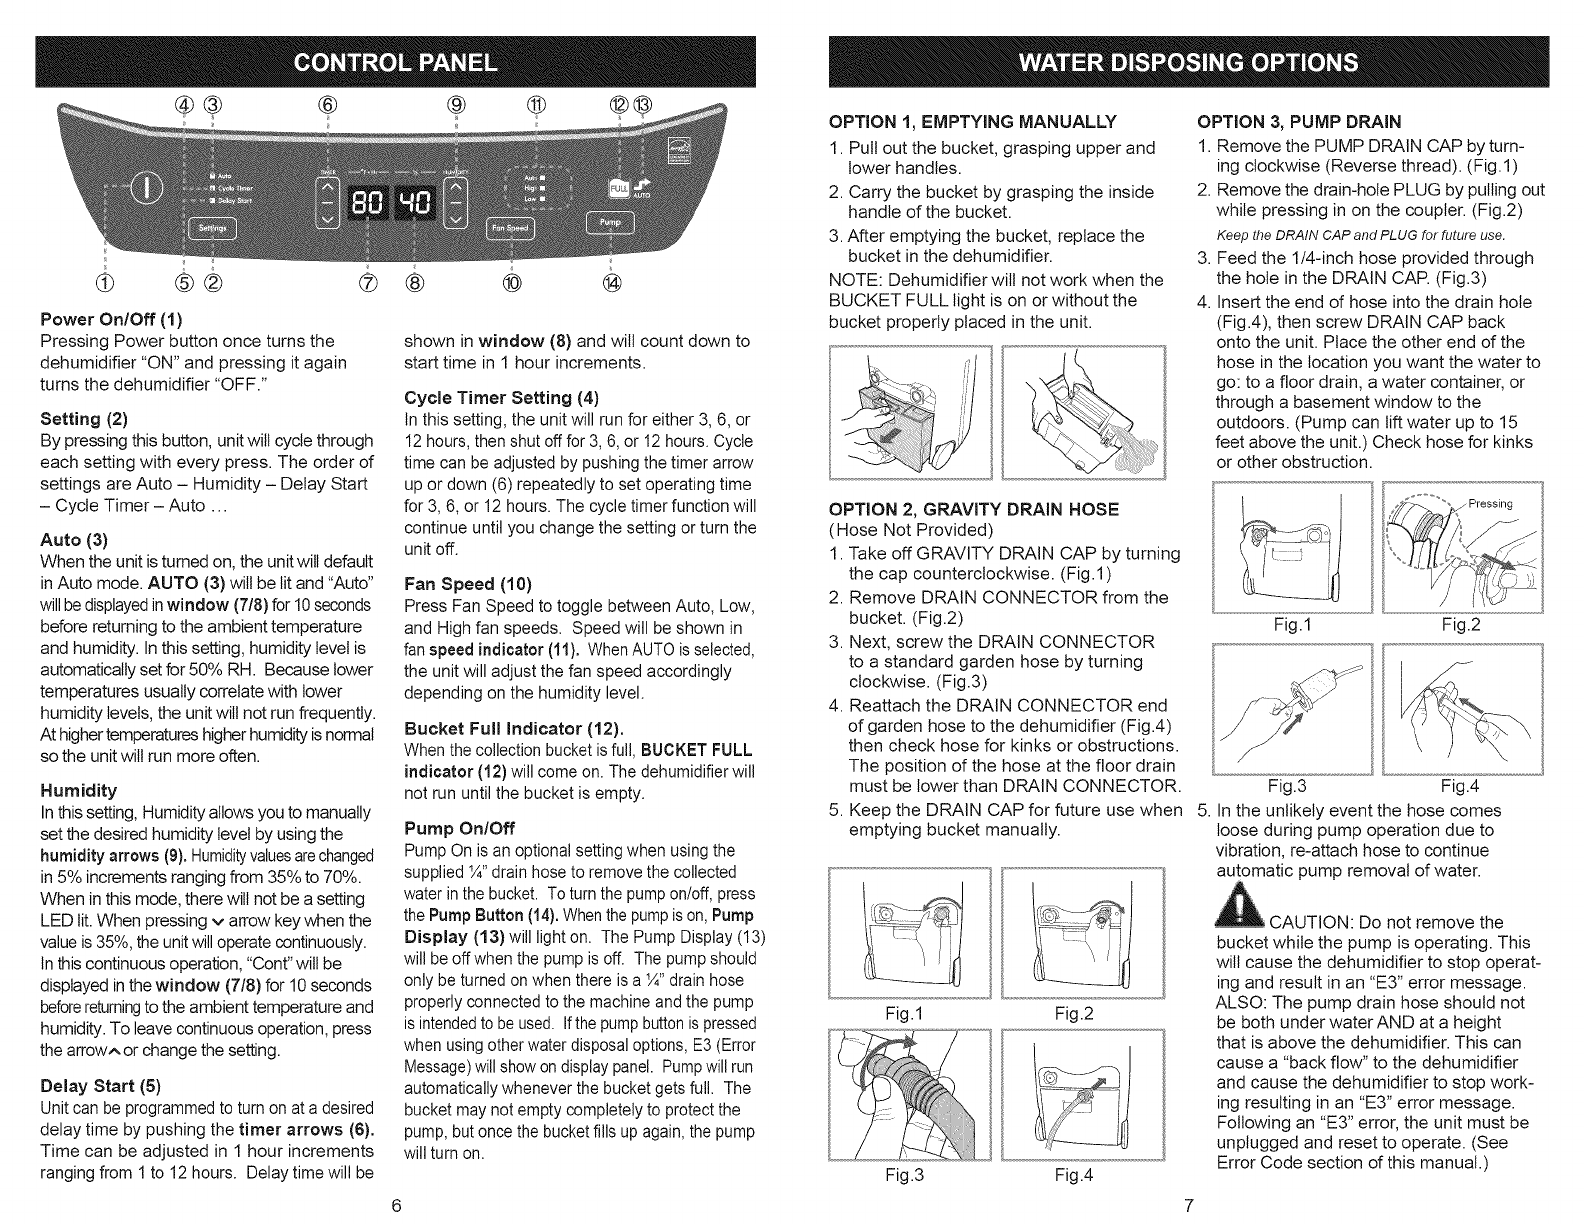 Page 4 of Kenmore Dehumidifier 251.90701 User Guide